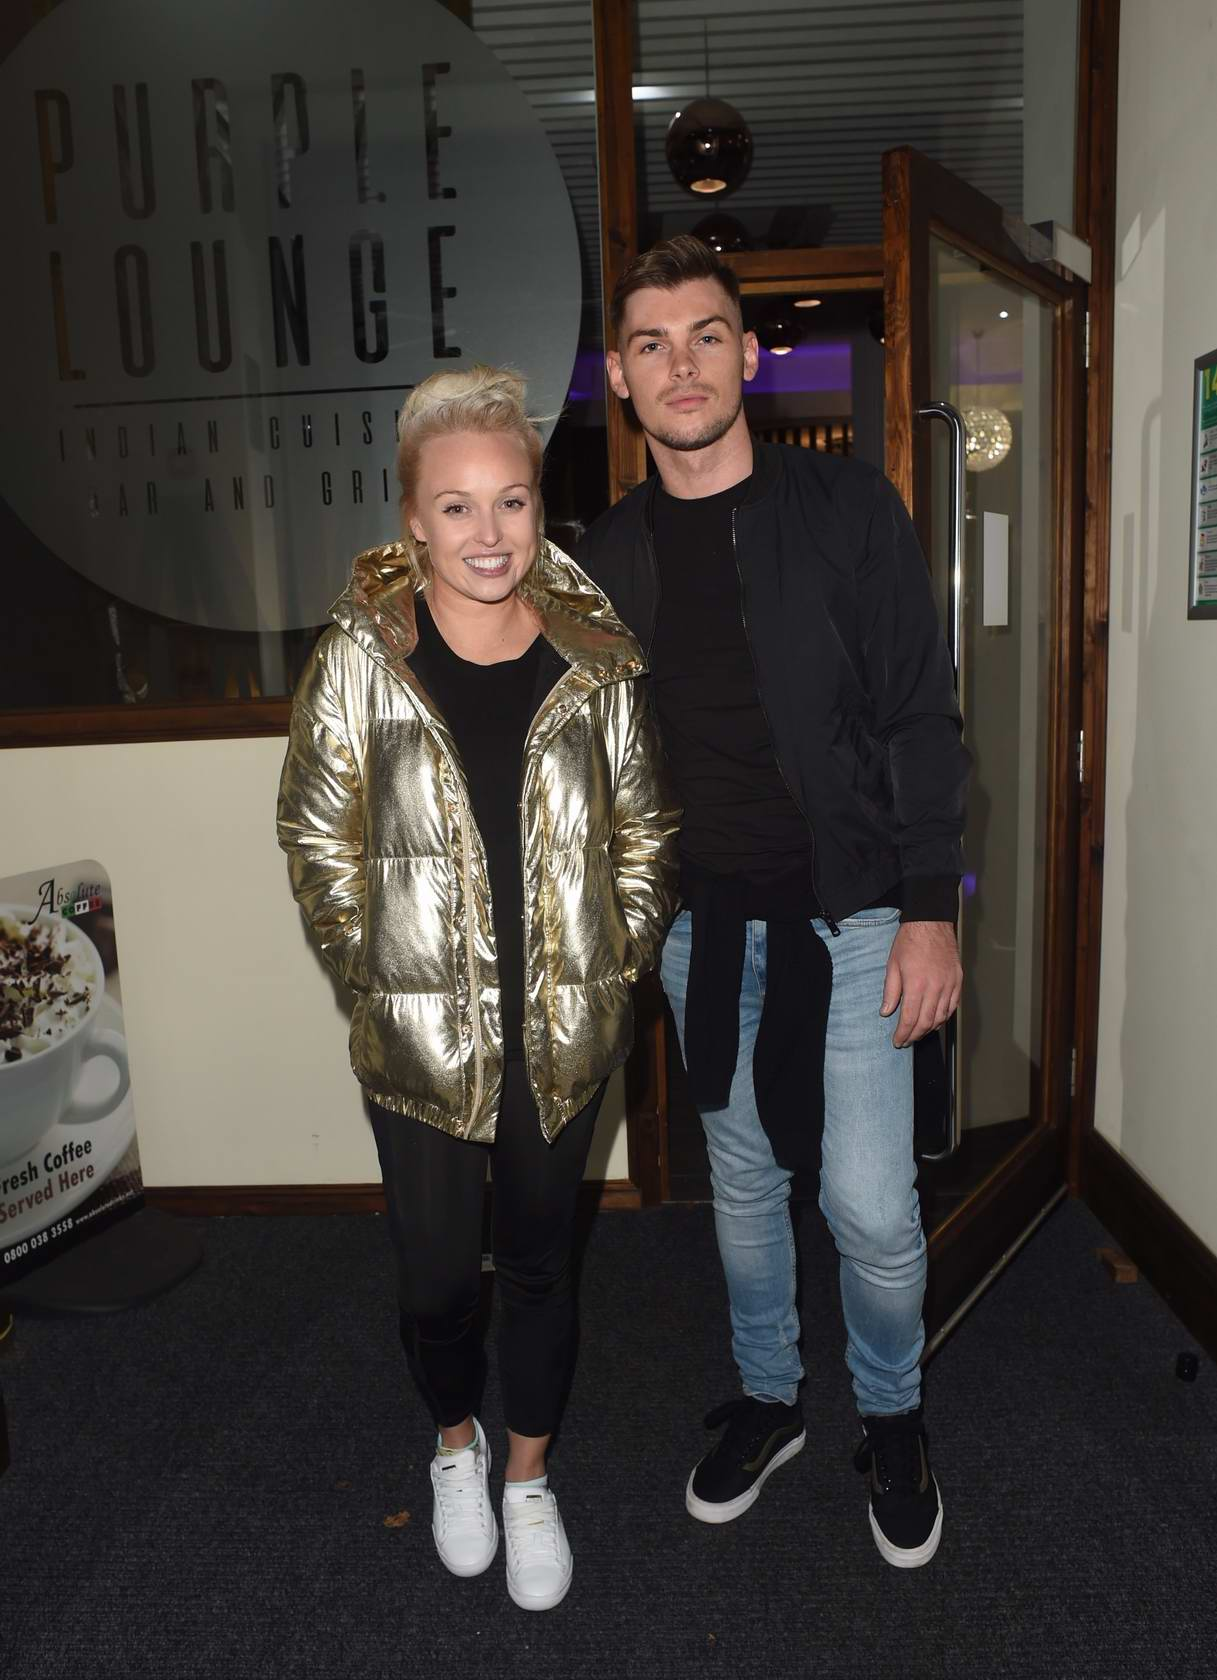 Jorgie Porter and Kieron Richardson seen leaving the Purple Lounge Indian Restaurant in Walkden near Manchester, UK